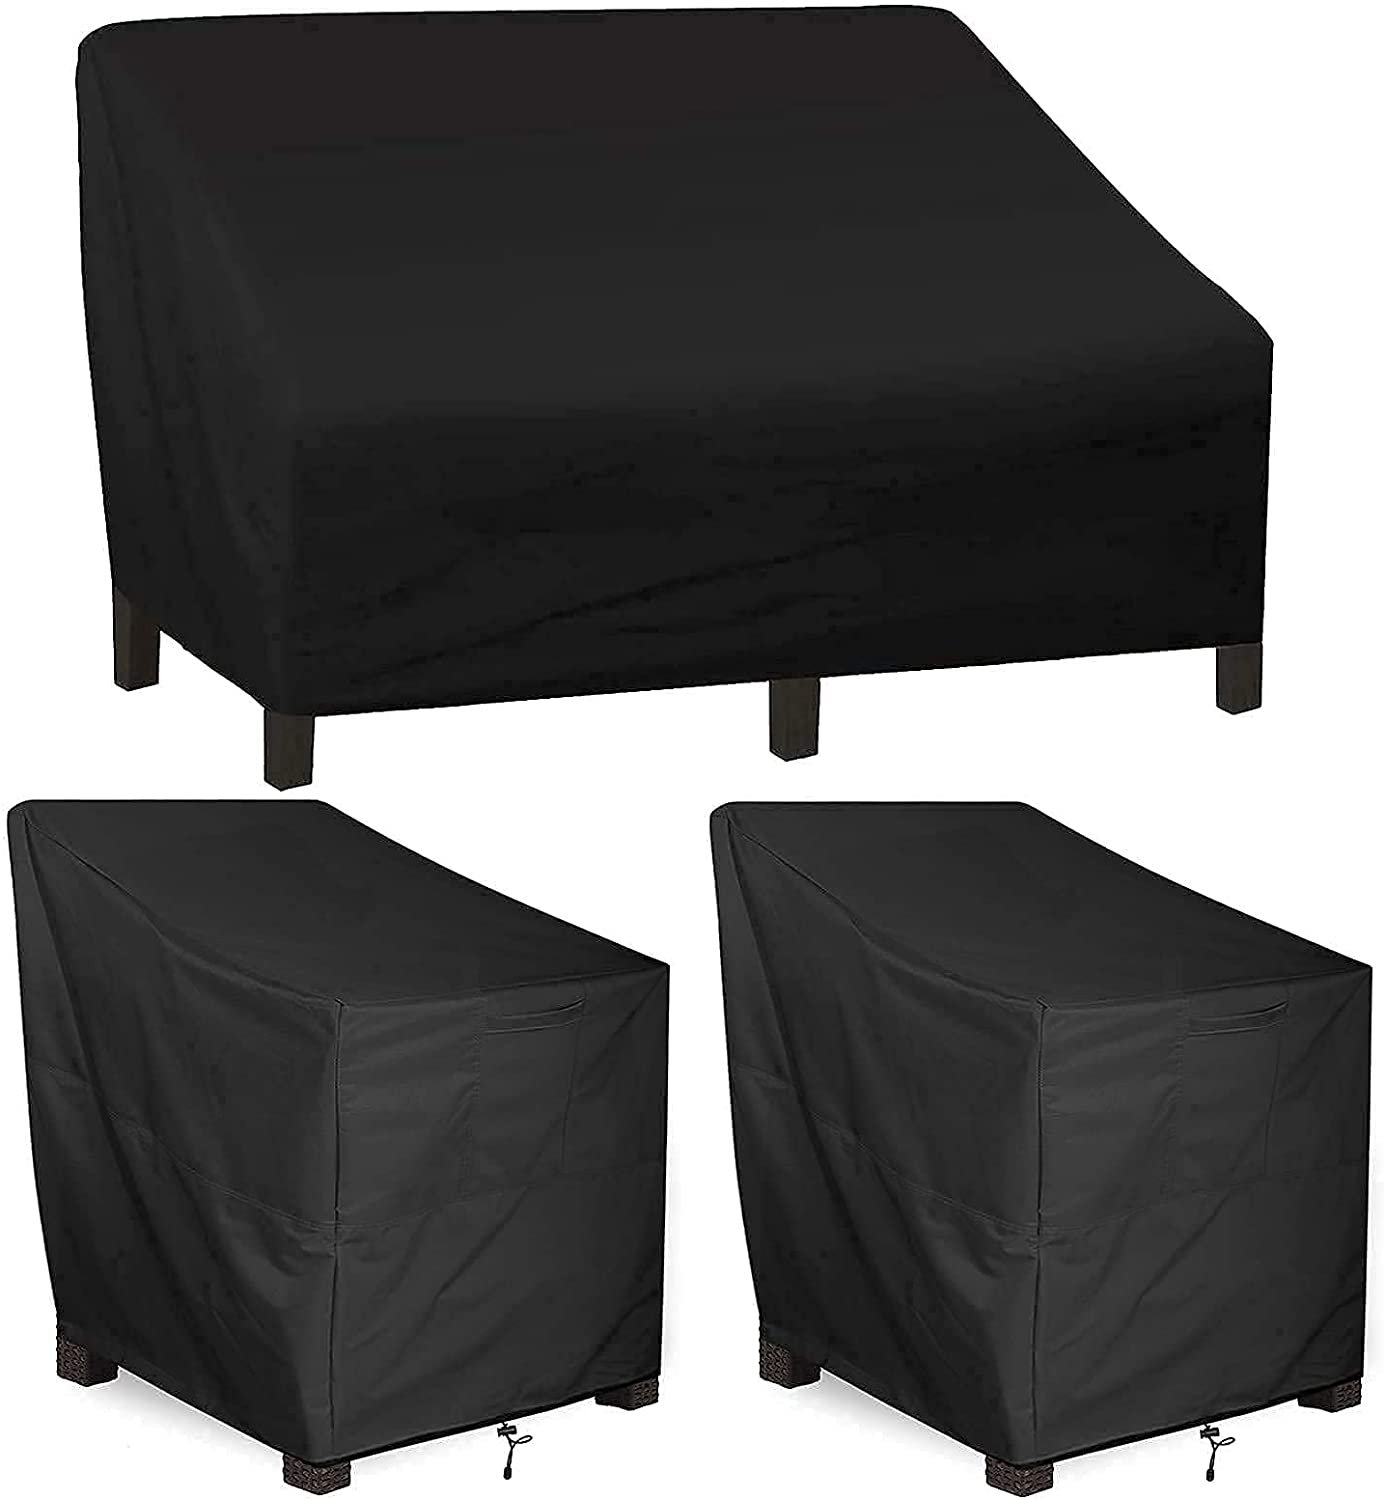 Outdoor Chair Covers Daily bargain sale 2 Pack ALSTER Loveseat Durable and Brand Cheap Sale Venue